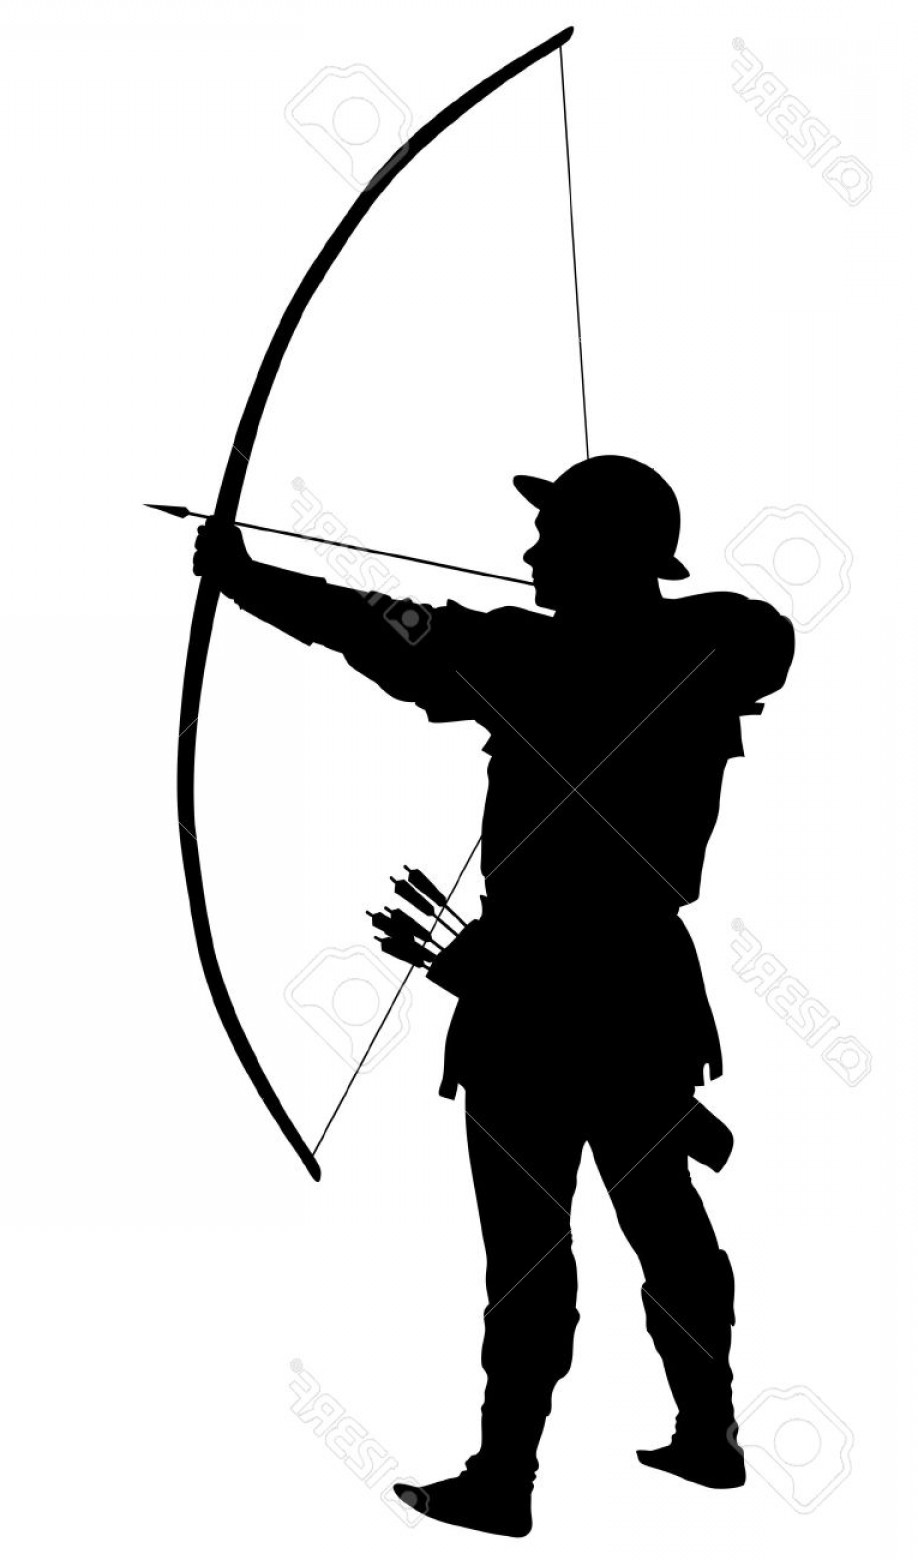 Vector Archery Silhouette: Photostock Vector Archer With Bow And Arrow Detailed Vector Silhouette